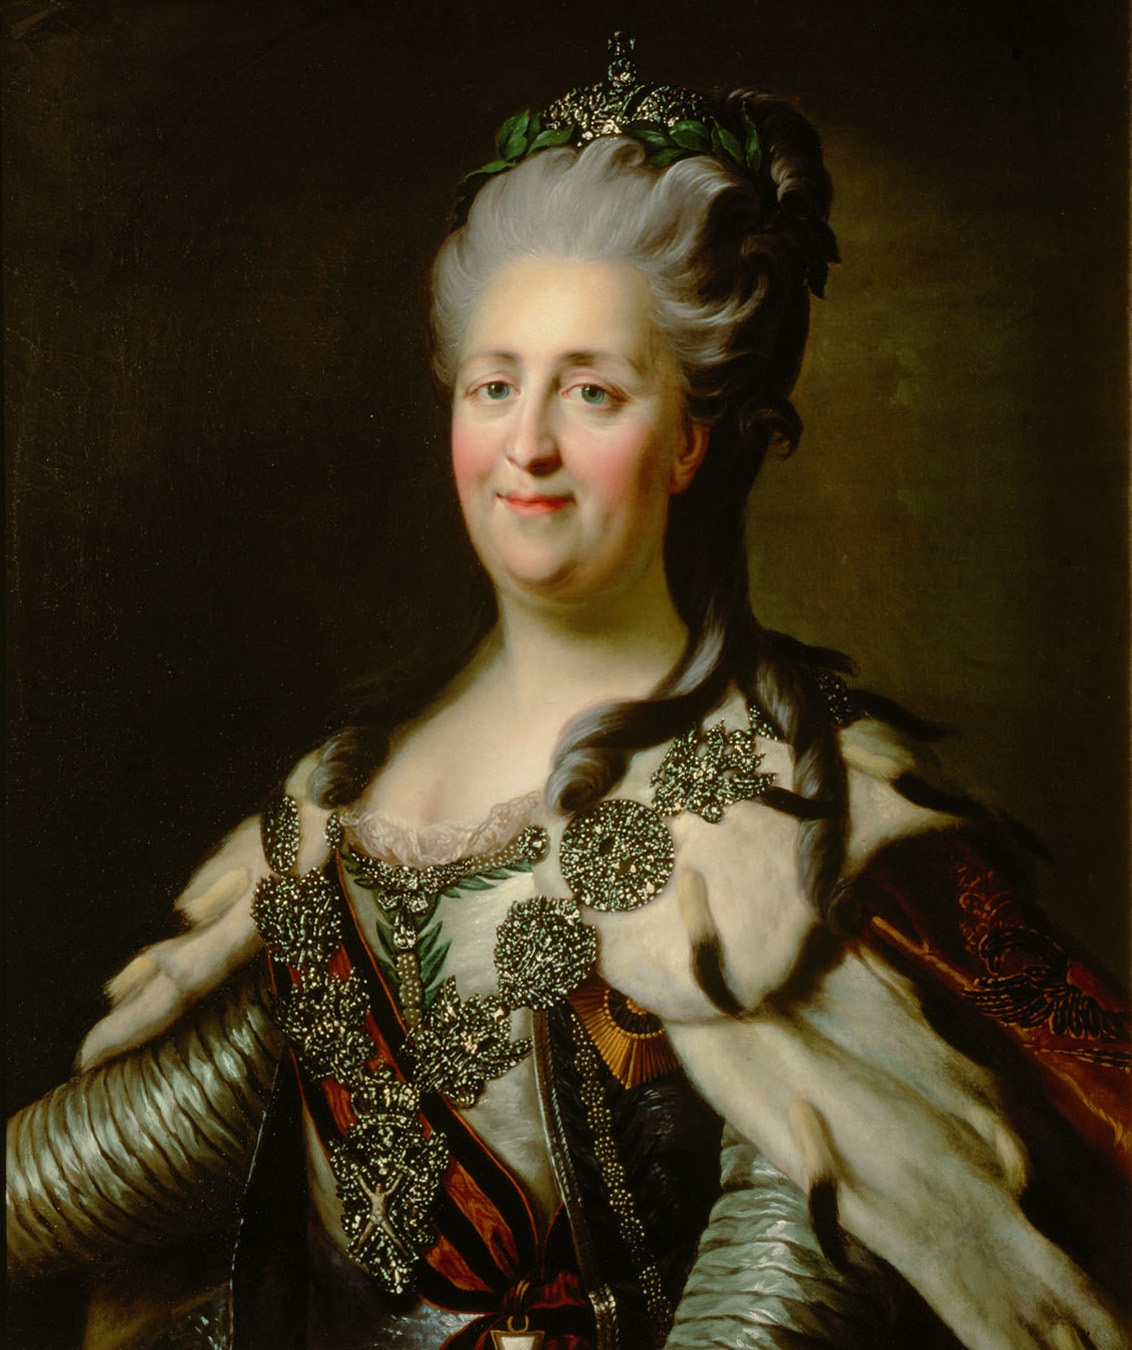 Catherine_II_by_J.B.Lampi_%281780s%2C_Kunsthistorisches_Museum%29 In Defense Of Stanisław, the Last King Of Poland